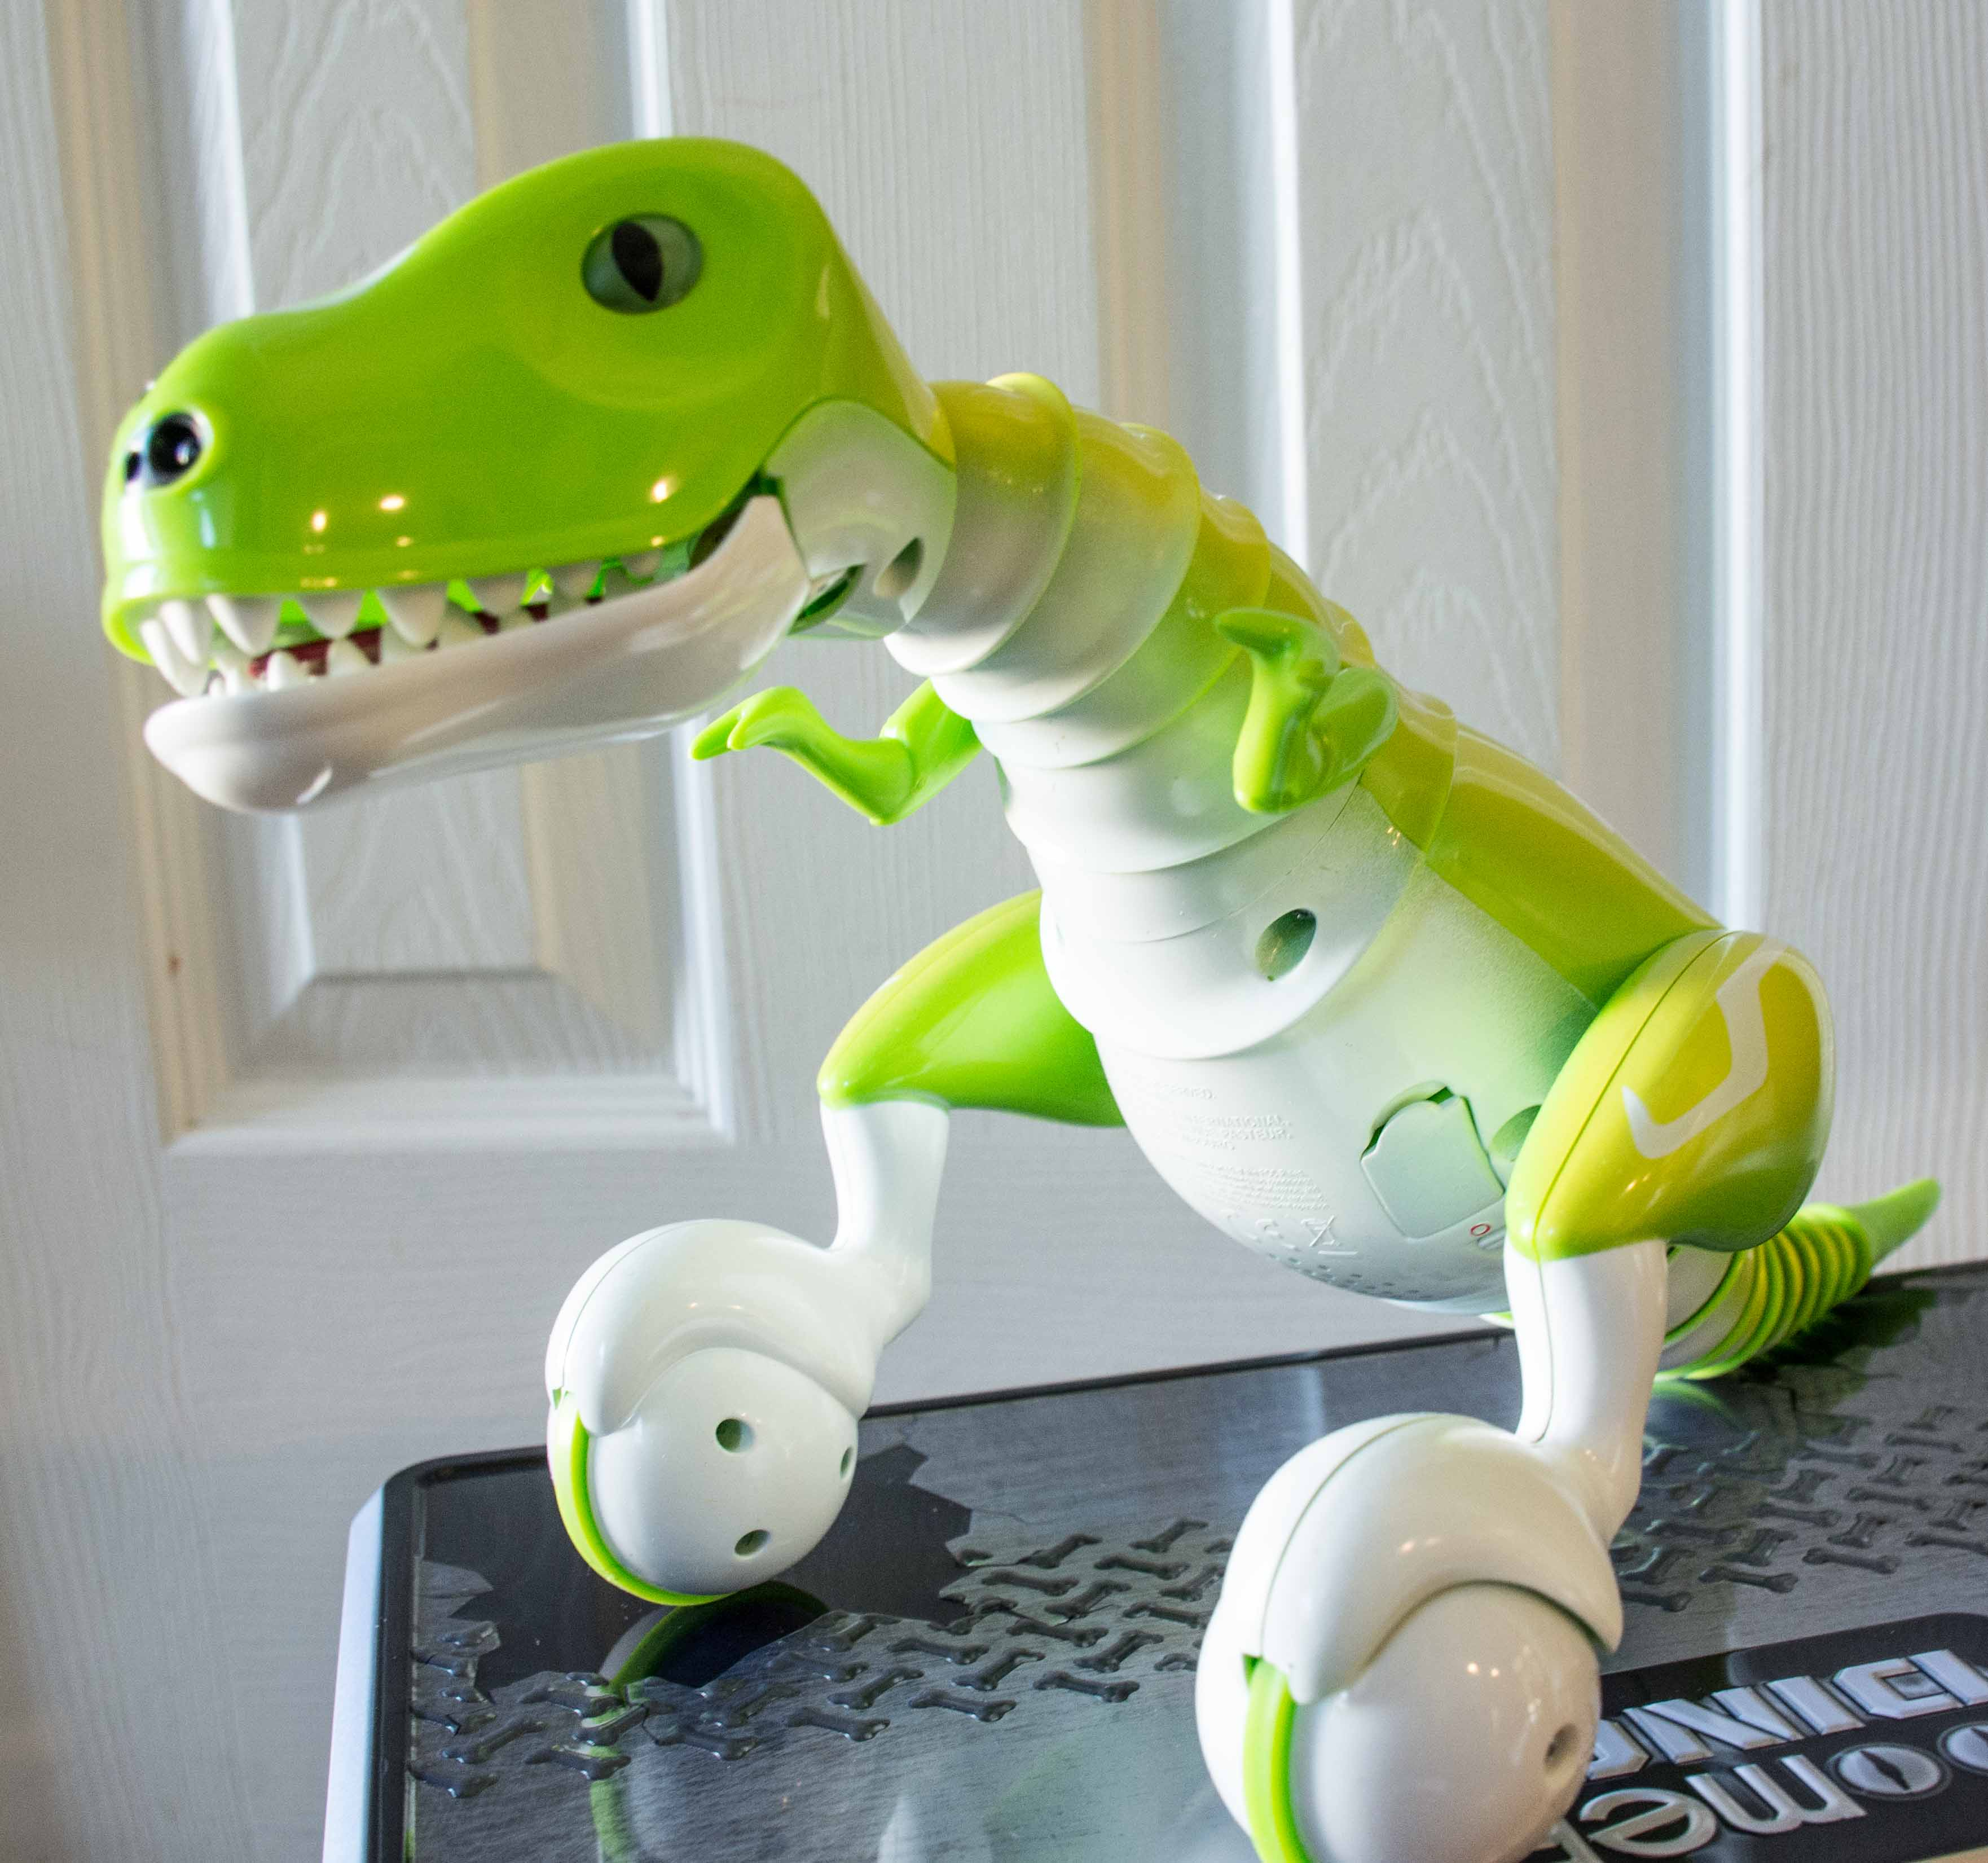 Zoomer dino boomer comes with the dino a charging cable a control